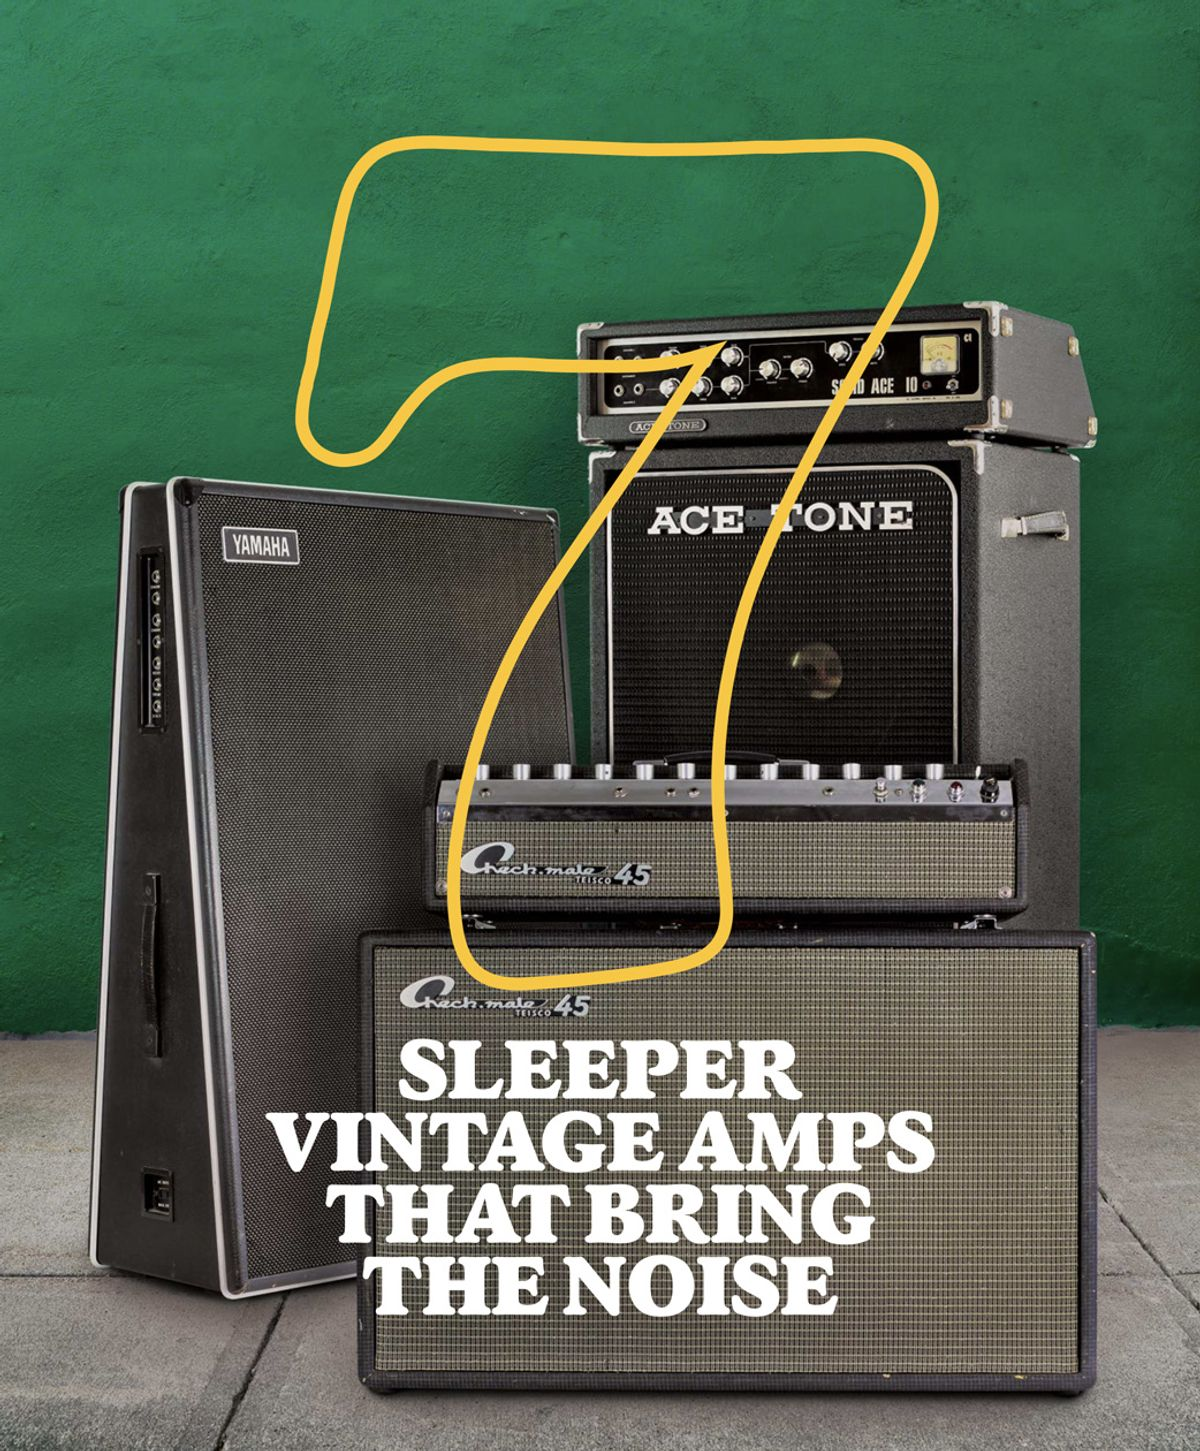 7 Sleeper Vintage Amps That Bring the Noise